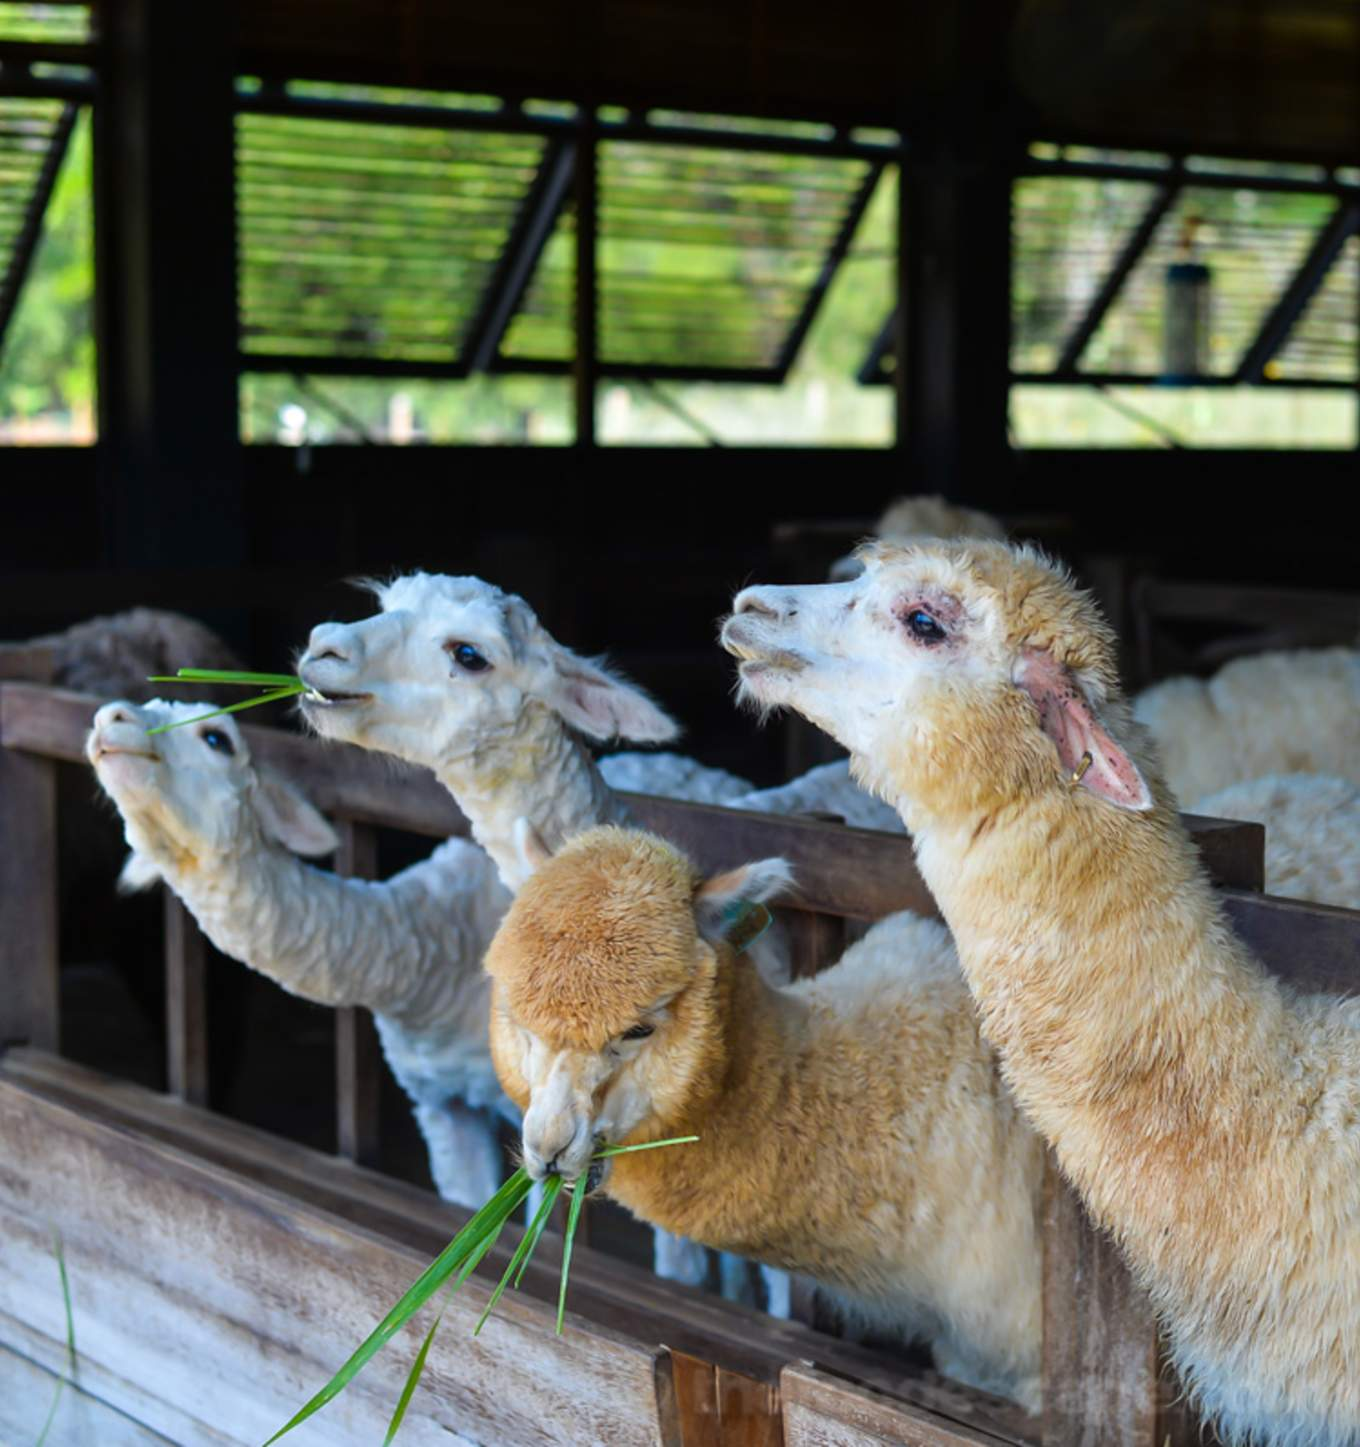 10-Activities-That-Will-Make-You-Wish-Family-Time-Would-Never-End-primo-piazza-alpacas-khao-yai